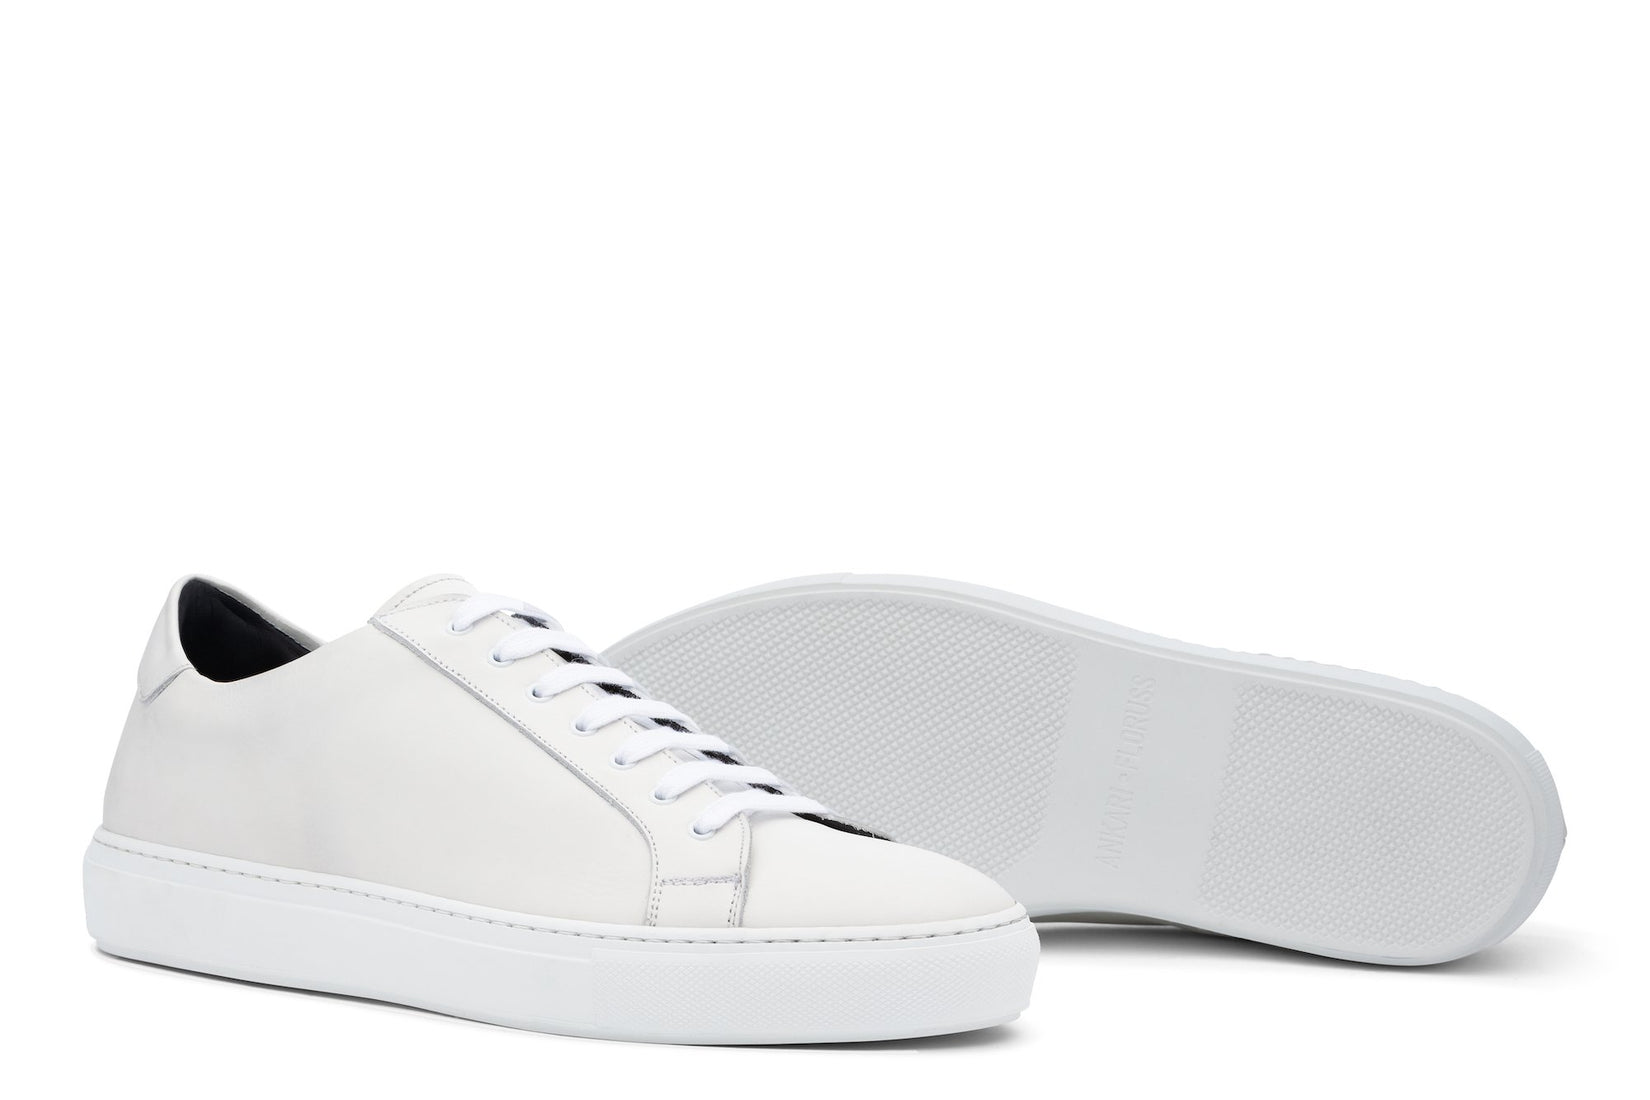 Saturday Lace-Up Sneaker in White